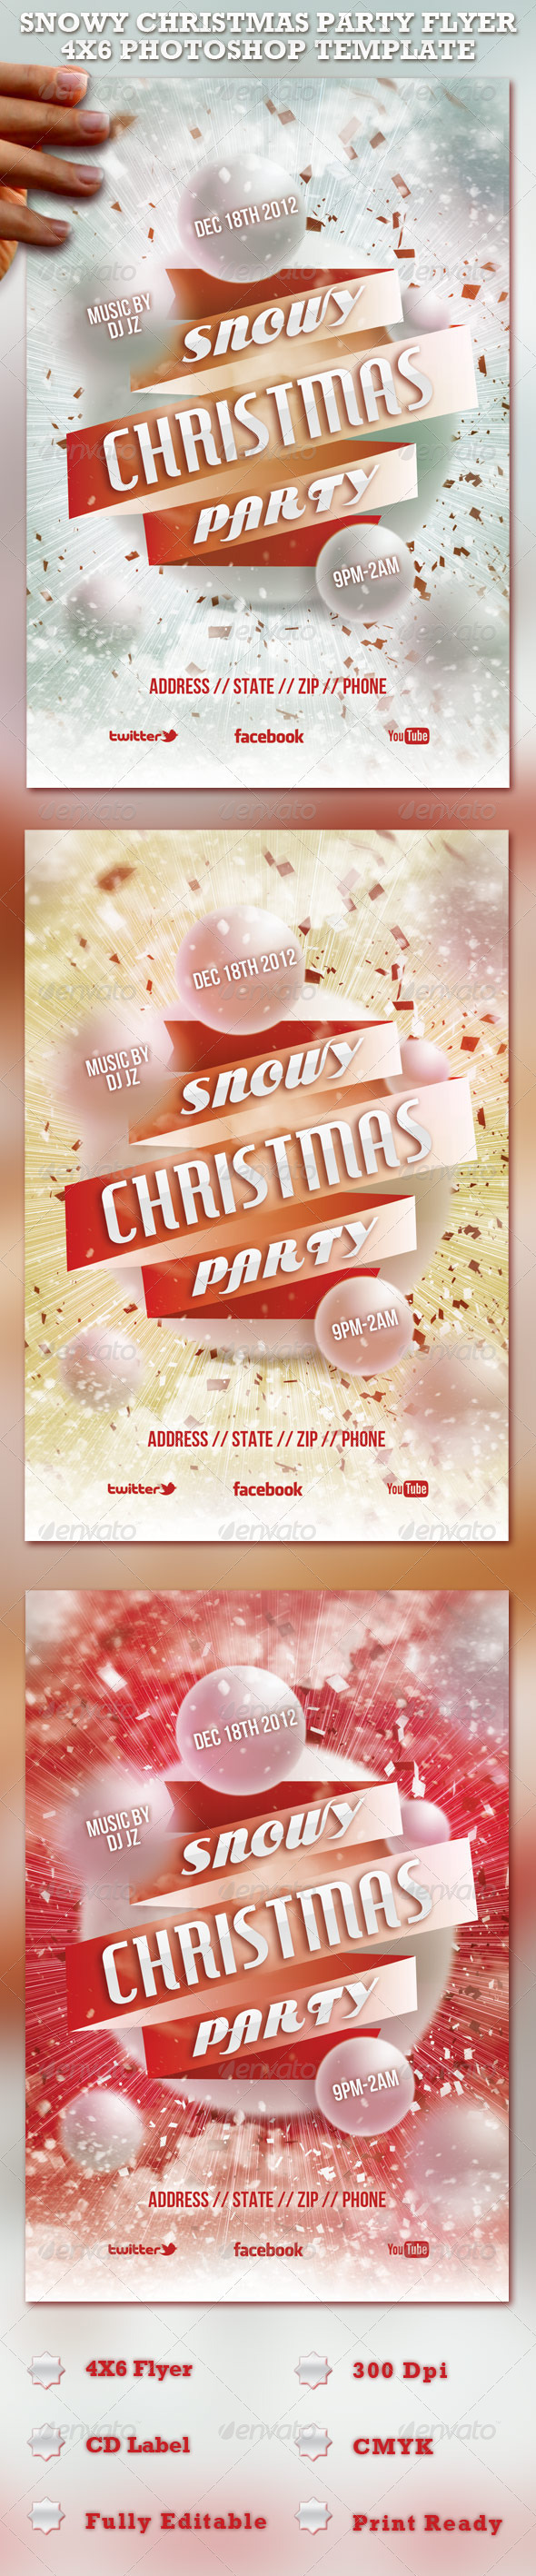 Snowy Christmas Party Flyer Template - Clubs & Parties Events